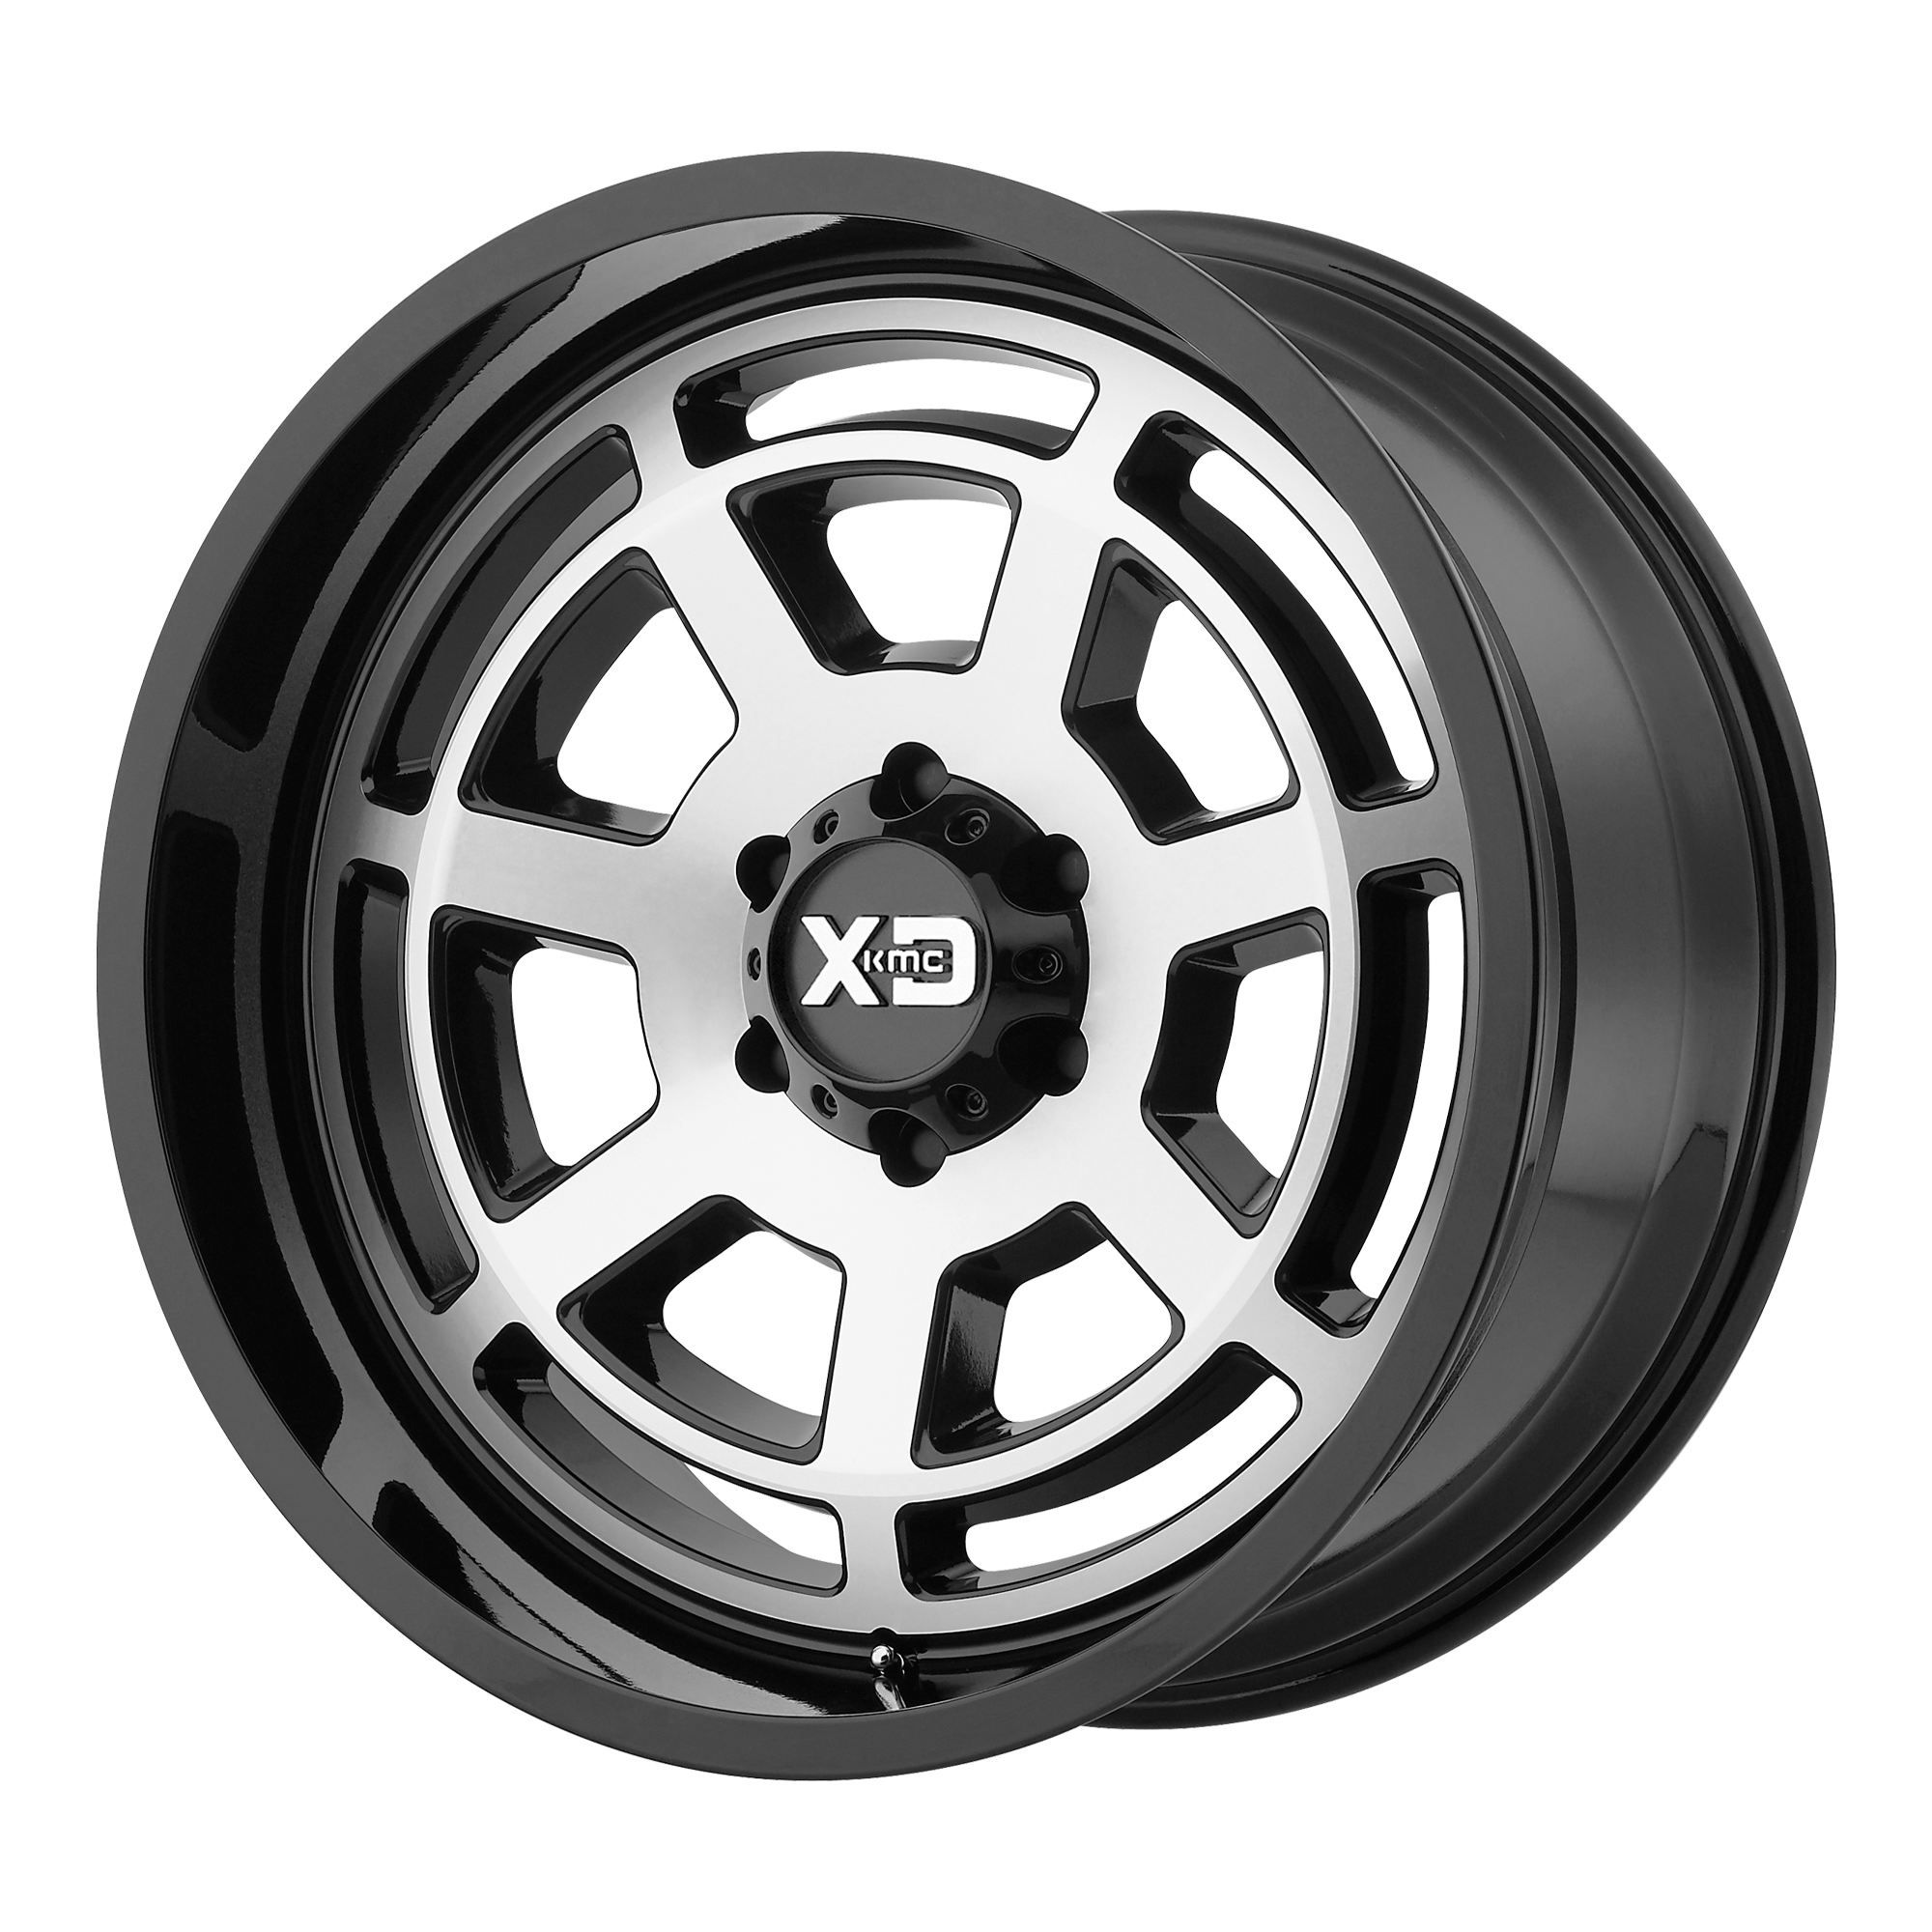 XD SERIES XD824 BONES hliníkové disky 9x20 8x180 ET18 Gloss Black Machined Face